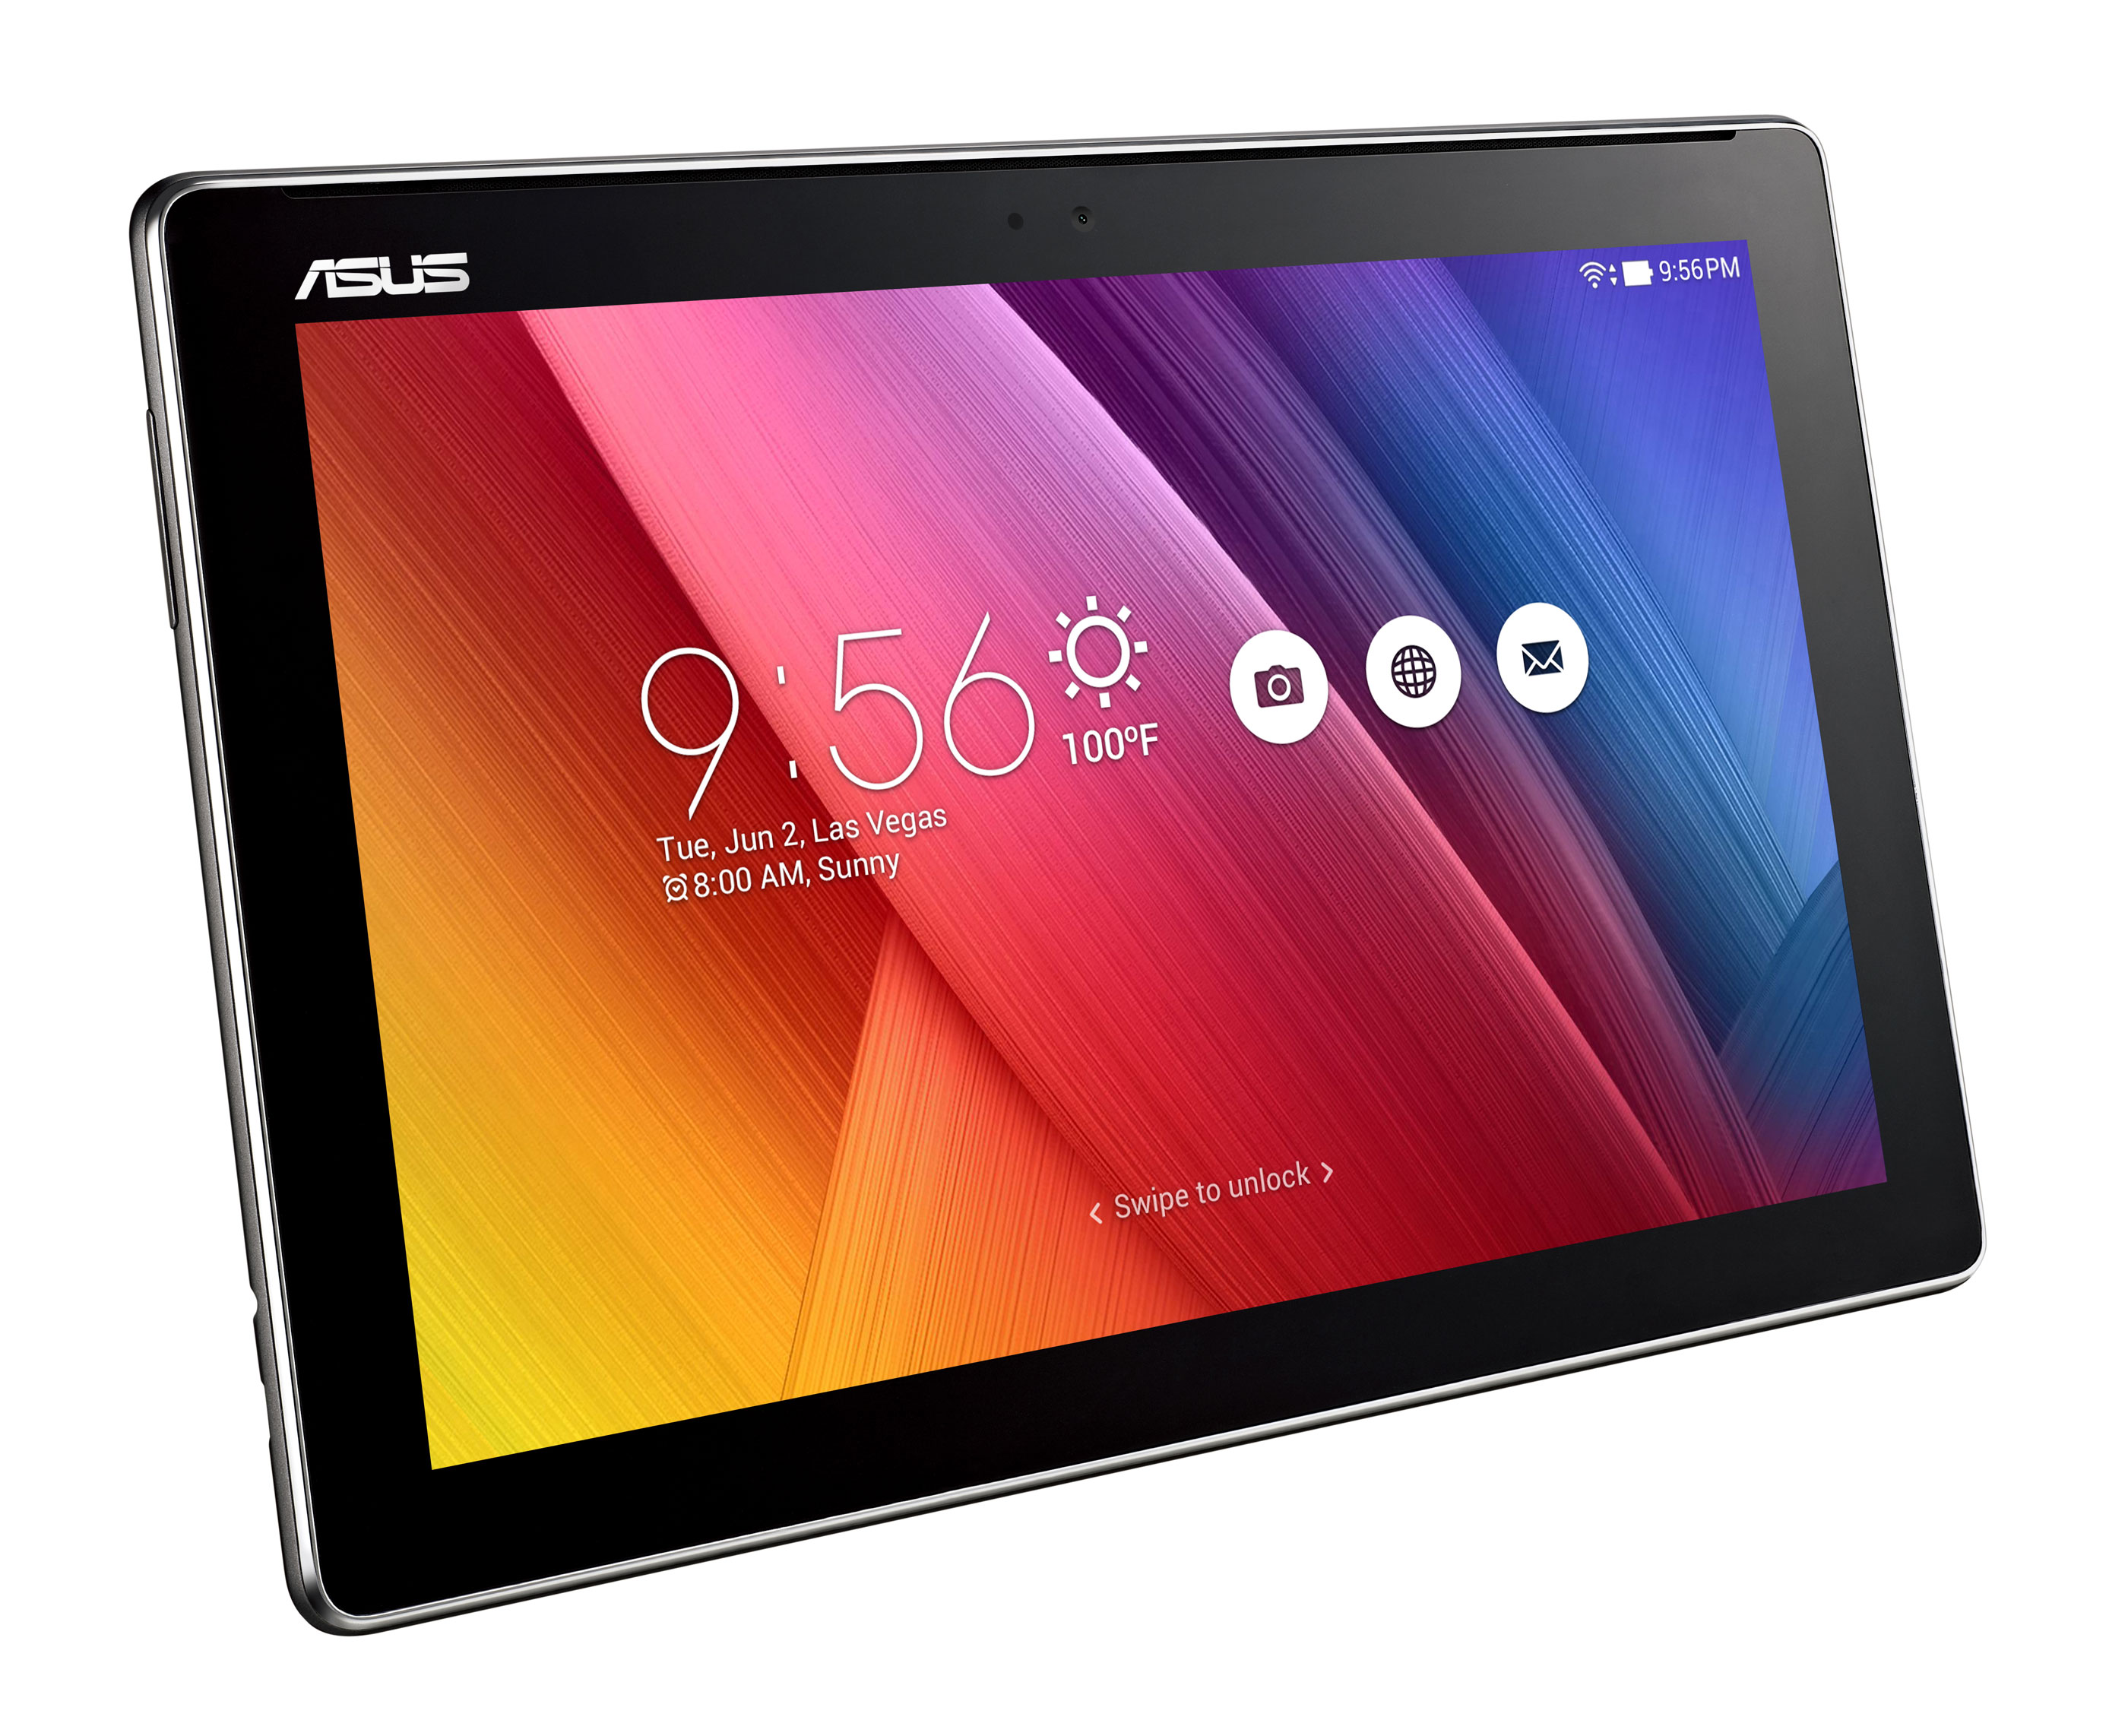 Image of Asus Z300C Intel Atom X3-C3200 Processor 2Gb RAM 16Gb Storage 102 Tablet